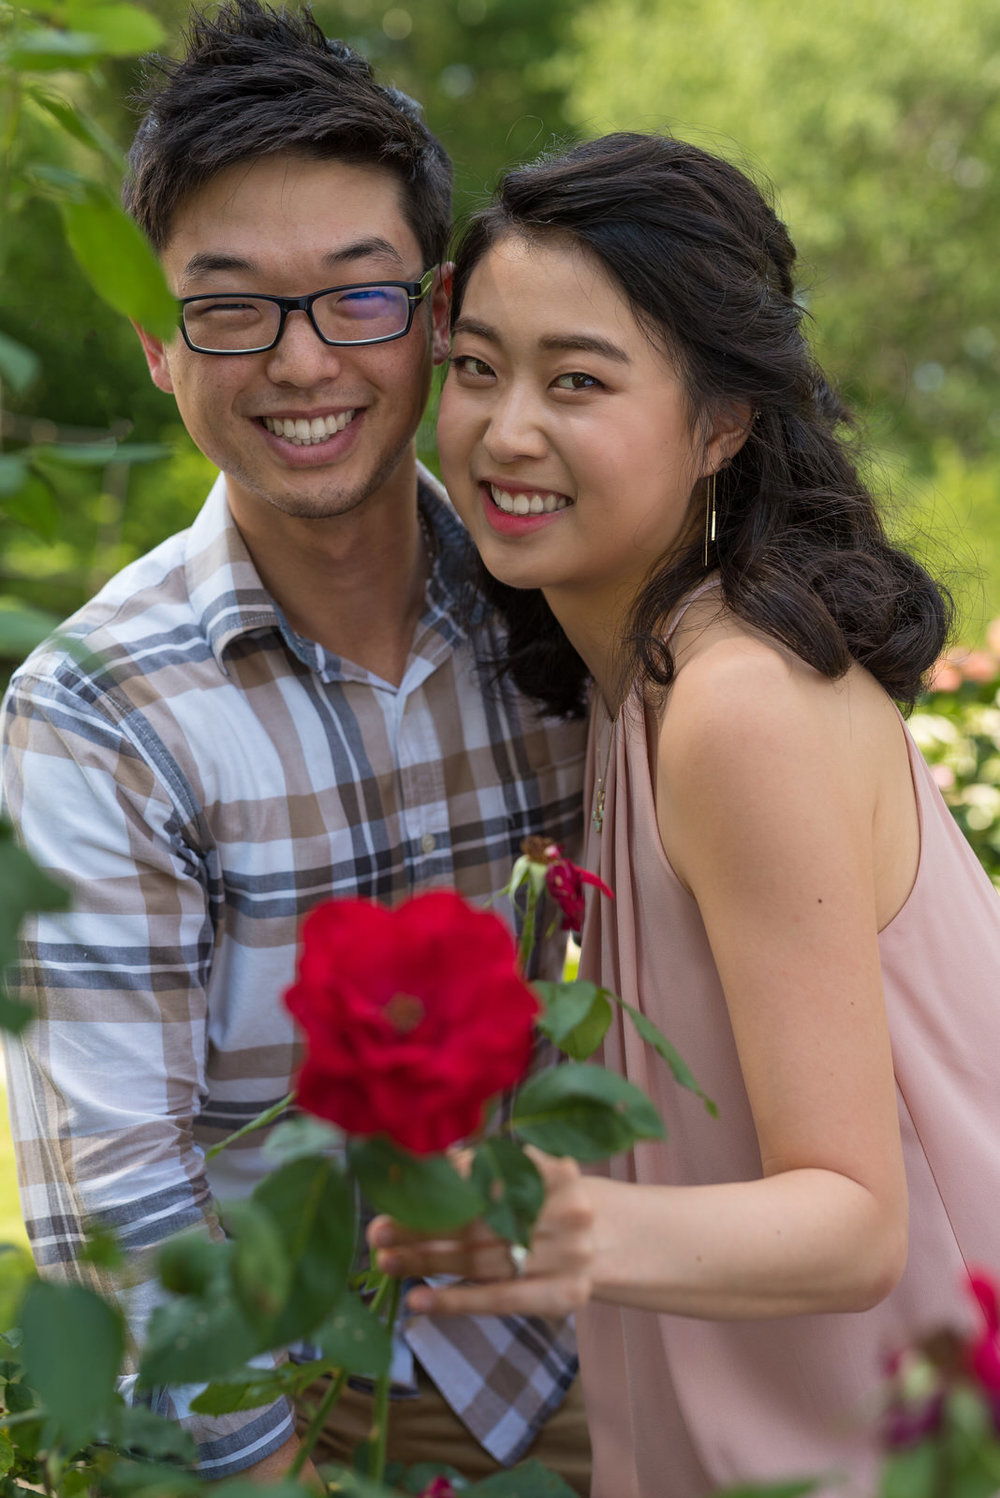 Engagement Photo Session at Smith-Gilbert Gardens